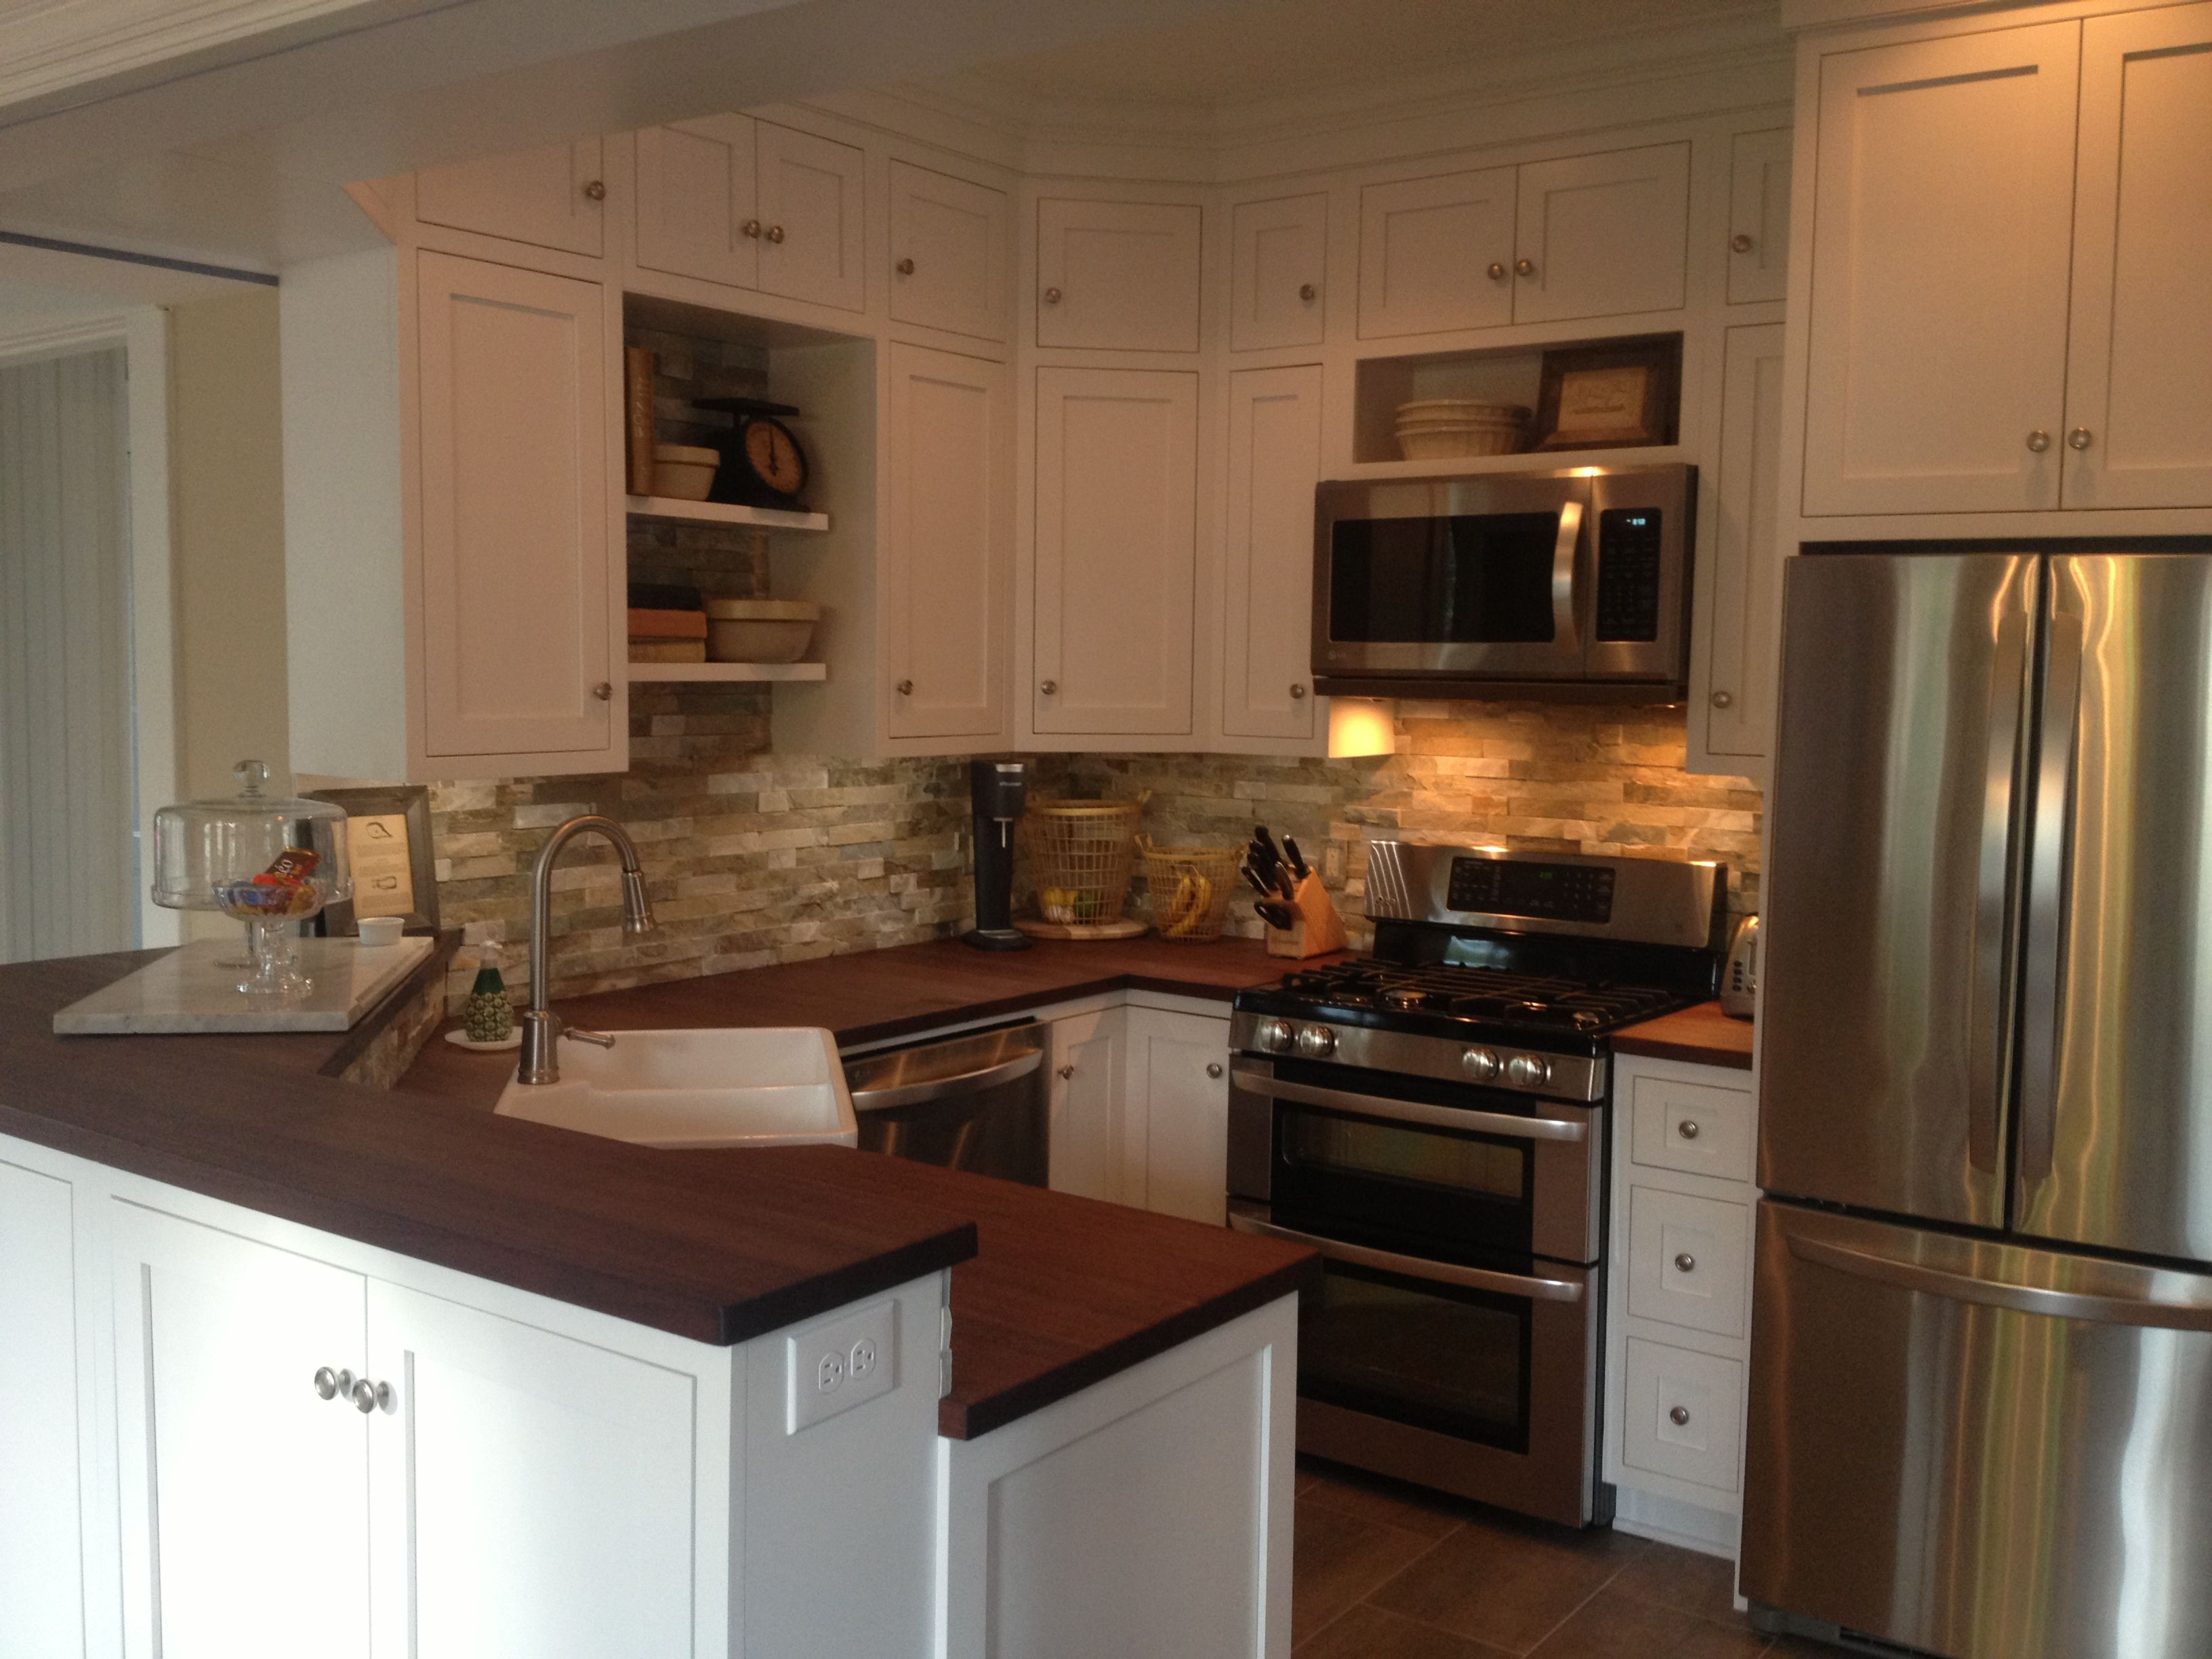 Renovated kitchen! Stone back splash + distressed walnut counter tops